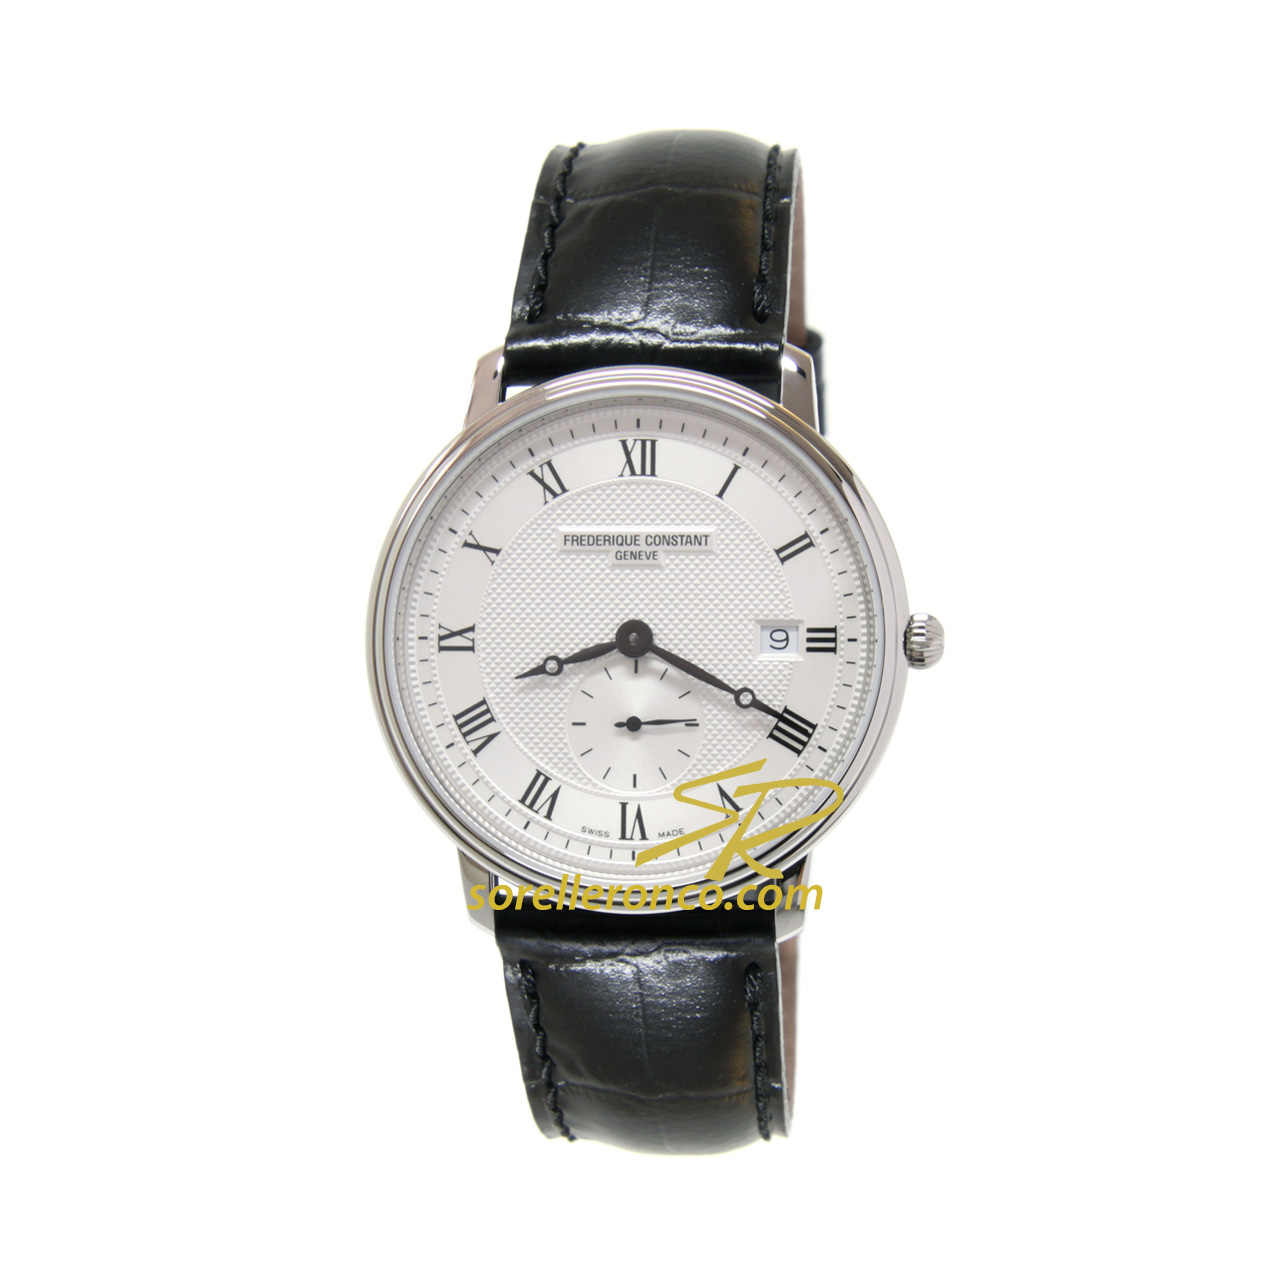 https://www.sorelleronco.it/Occasioni/schede_orologi/Frederique-Constant/wcr3295-Slimline-Gents-Small-Seconds-Silver/FREDERIQUE-CONSTANT-Slimline-Gents-FC-245M5S6.jpg